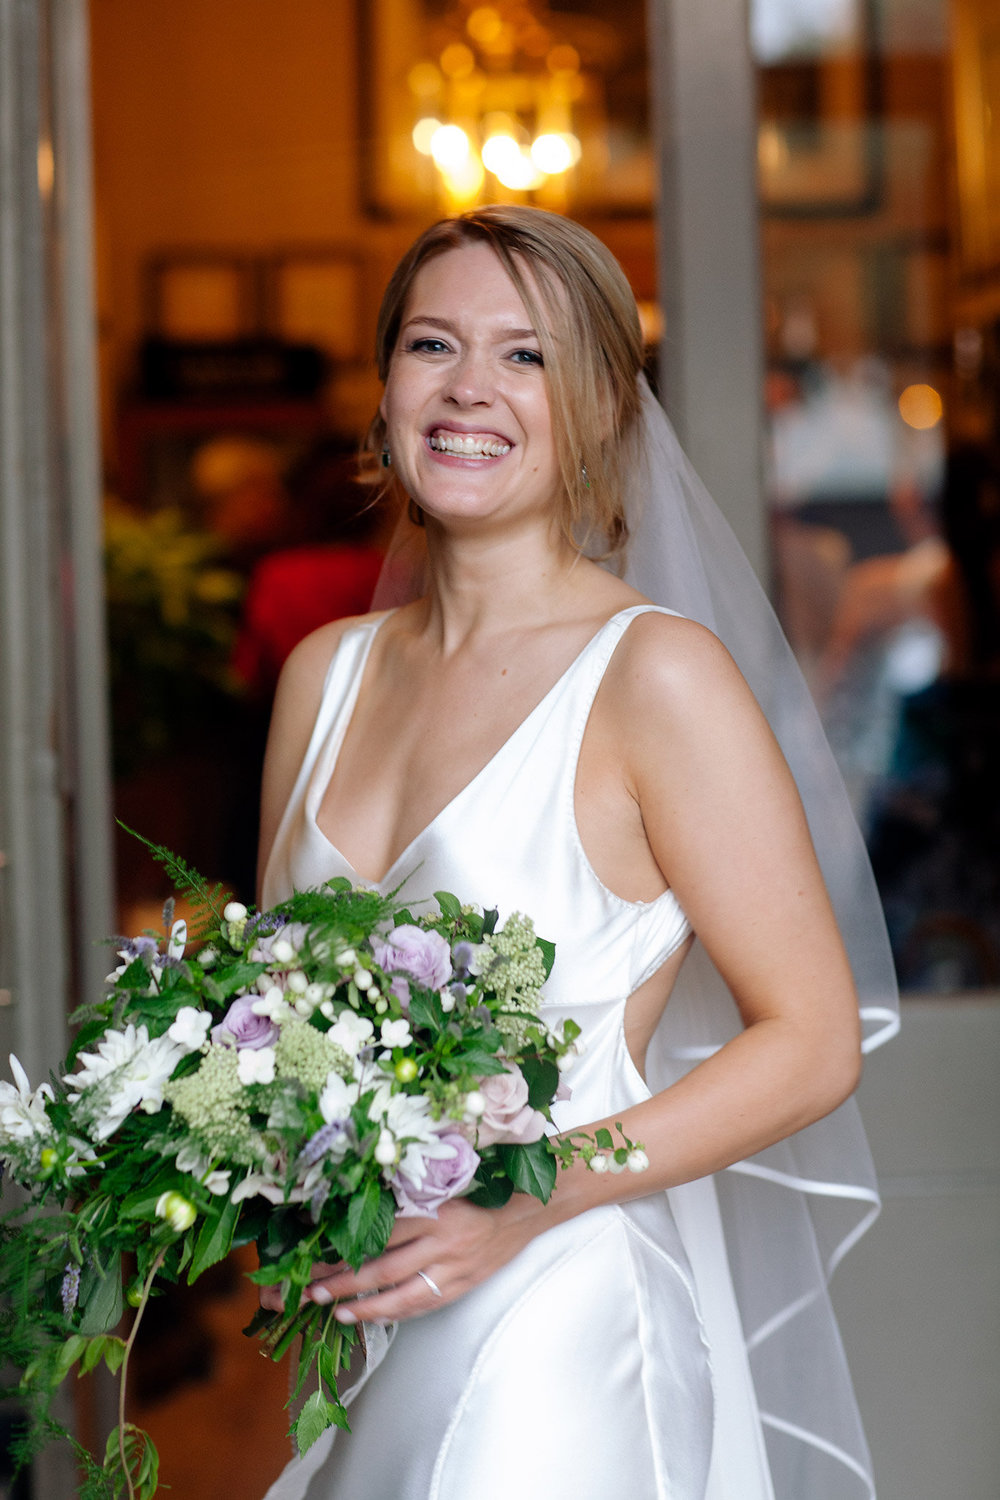 Caroline Mark-Bride Groom Portrtaits Formal Photos-0022.jpg